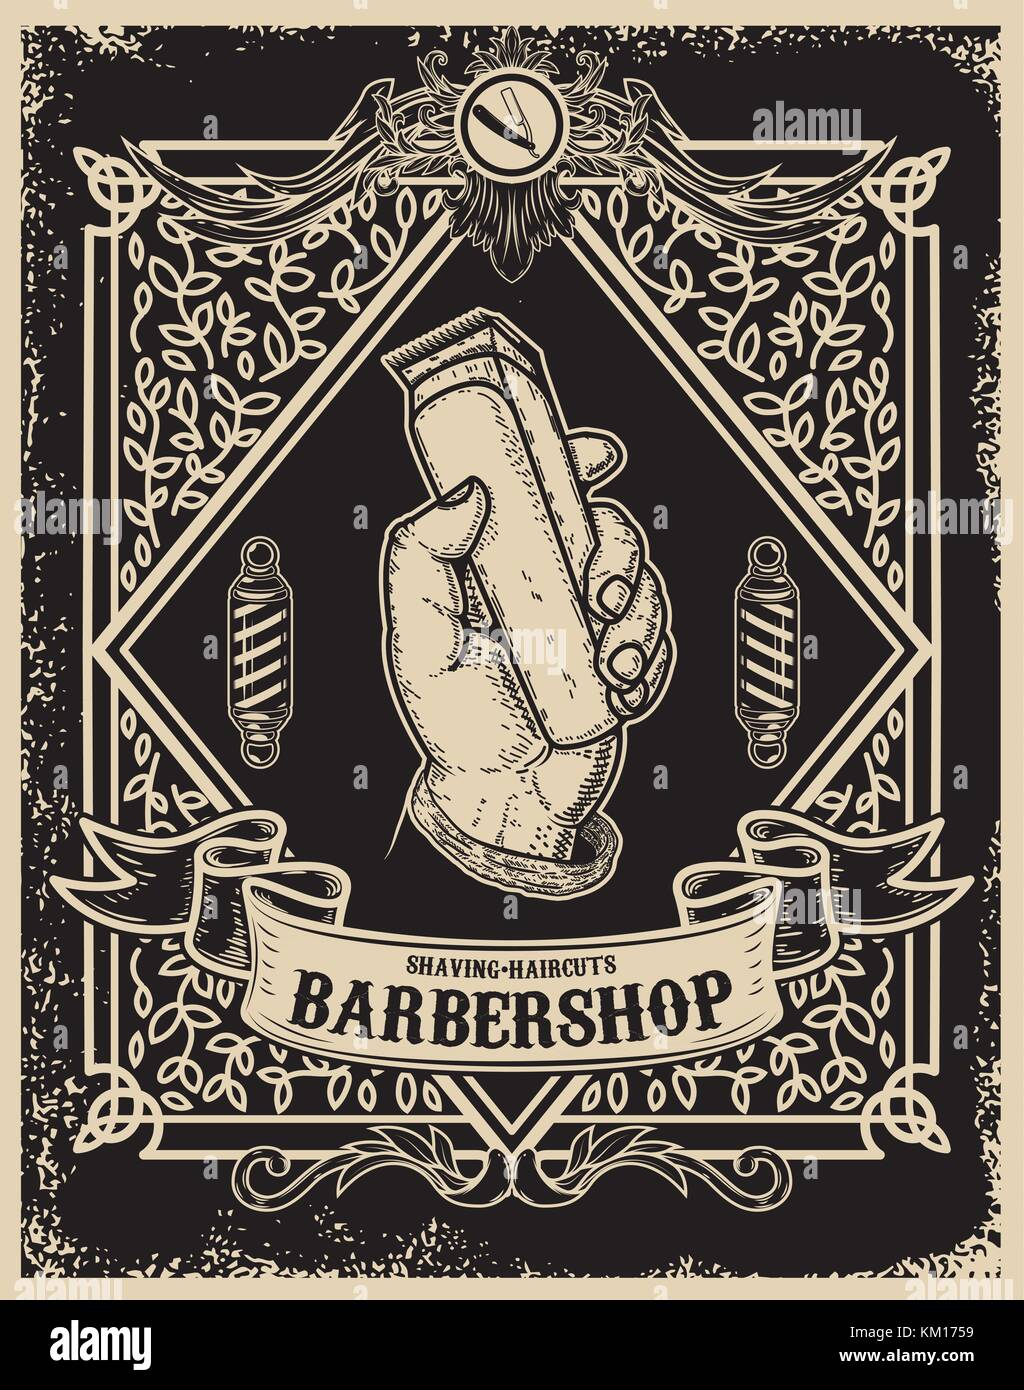 https www alamy com stock image barber shop poster template human hand with hair clipper design element 167214021 html